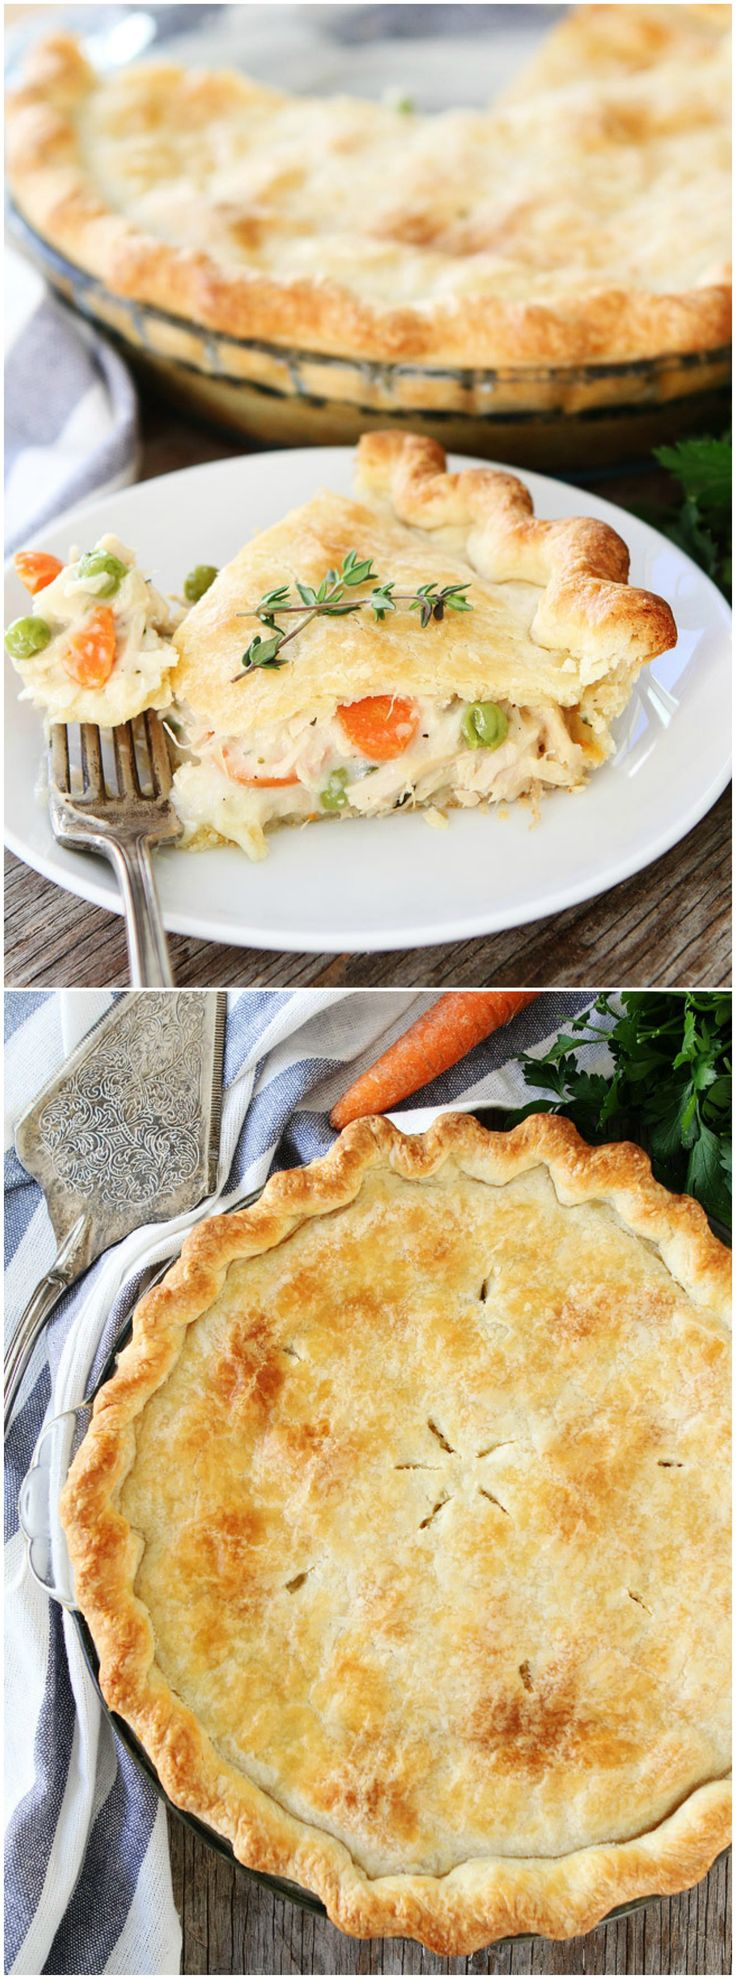 Chicken Pot Pie Recipe - This classic homemade chicken pot pie is the ultimate comfort food and it freezes well too!